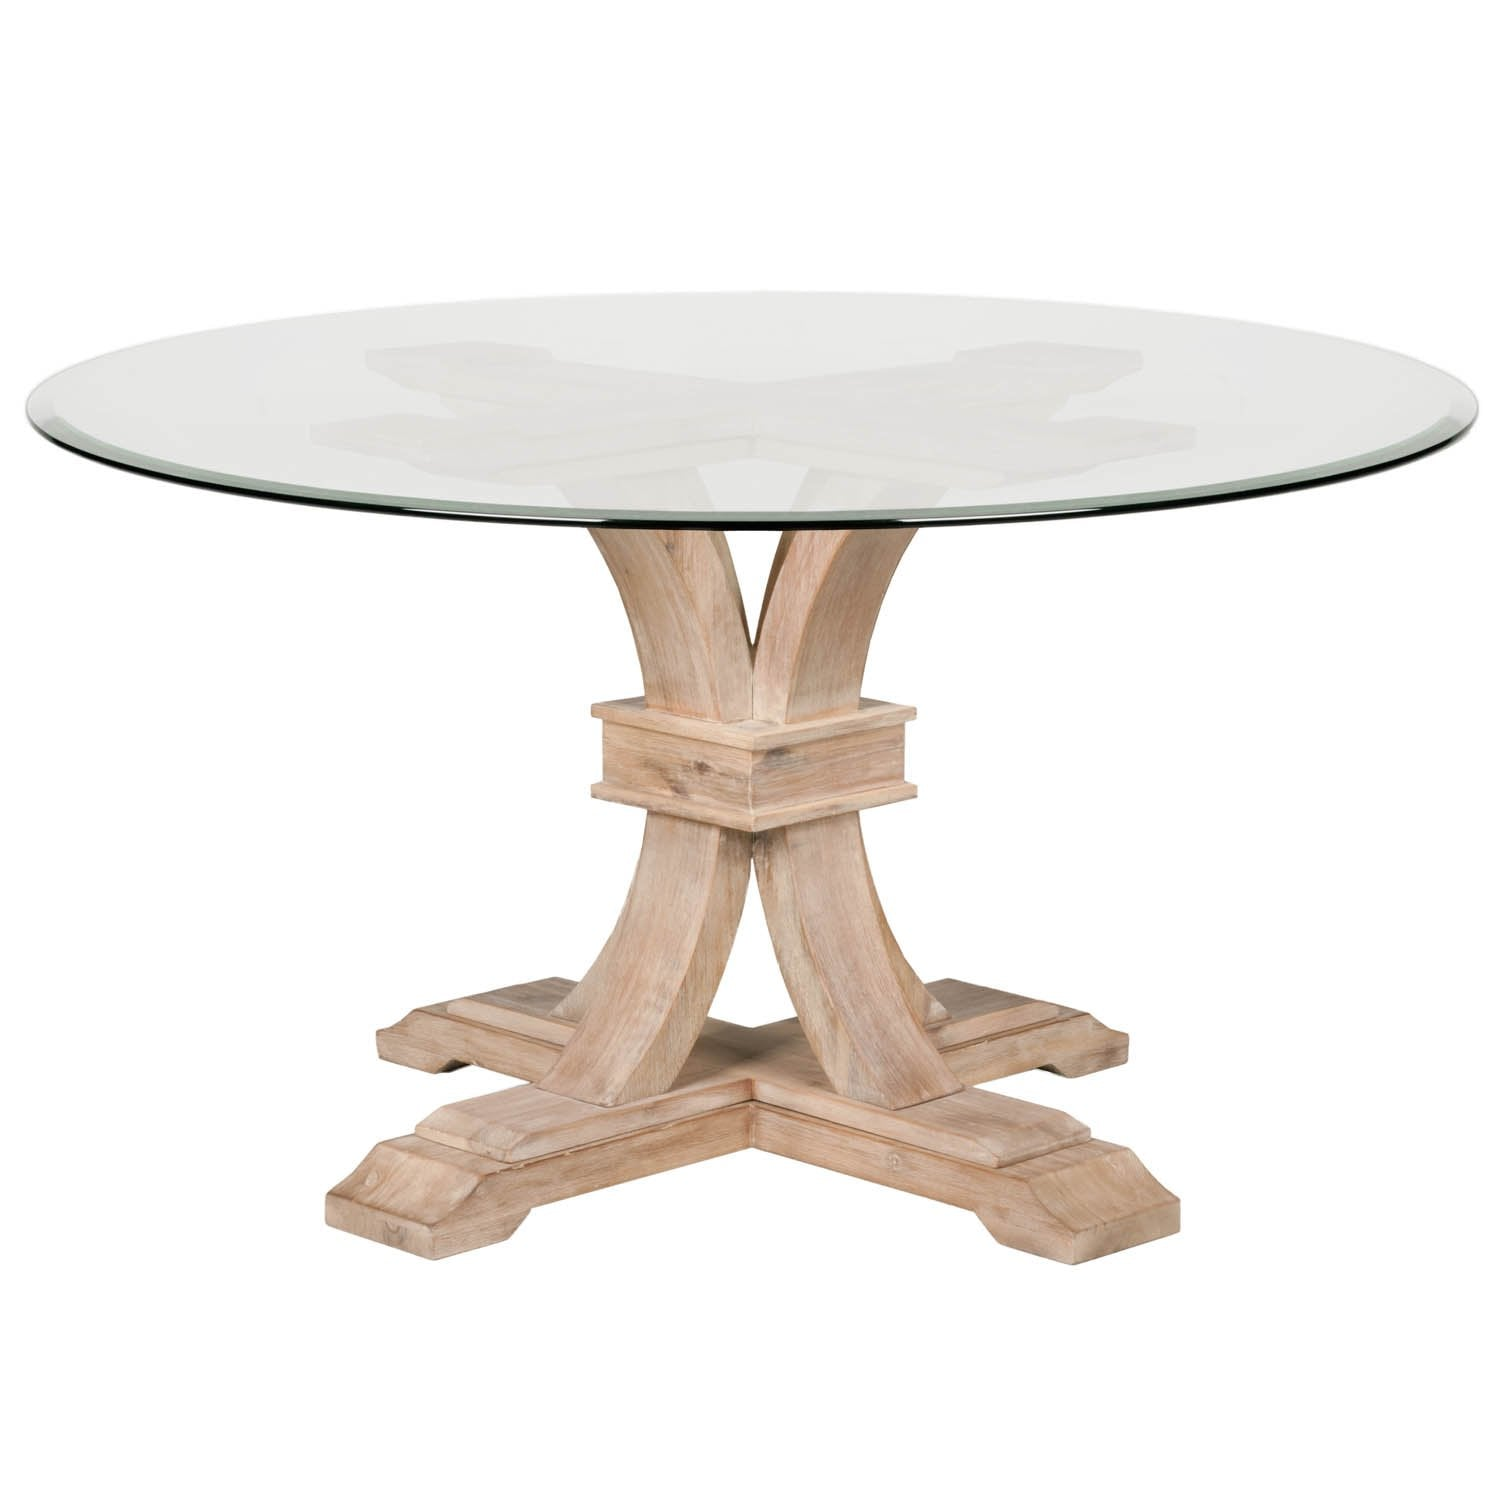 "Devon 54"" Round Glass Dining Table in Stone Wash"